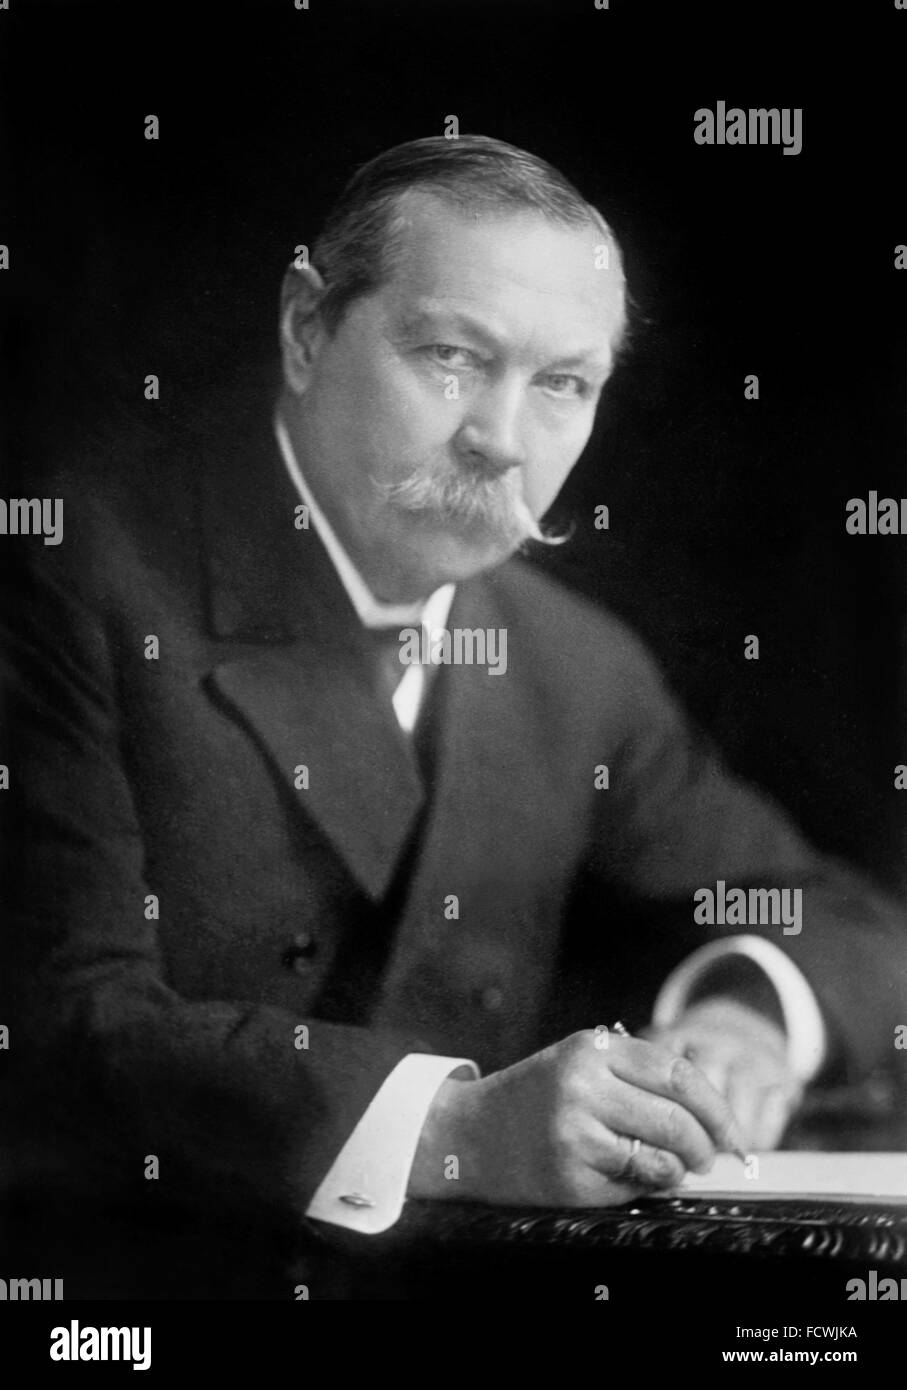 Arthur Conan Doyle. Portrait of the British writer and physician, Sir Arthur Conan Doyle - Stock Image